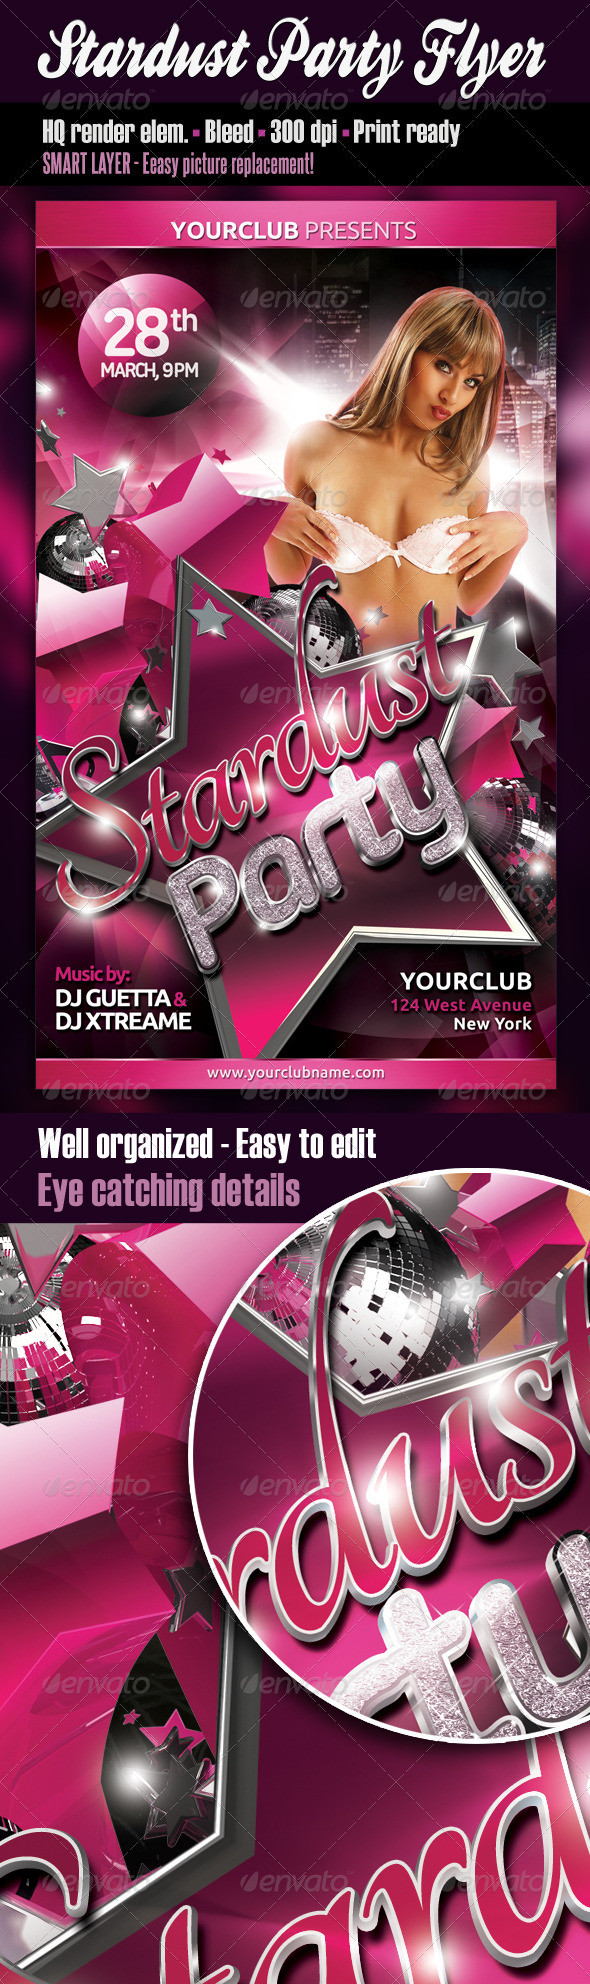 Stardust Party Flyer - Clubs & Parties Events